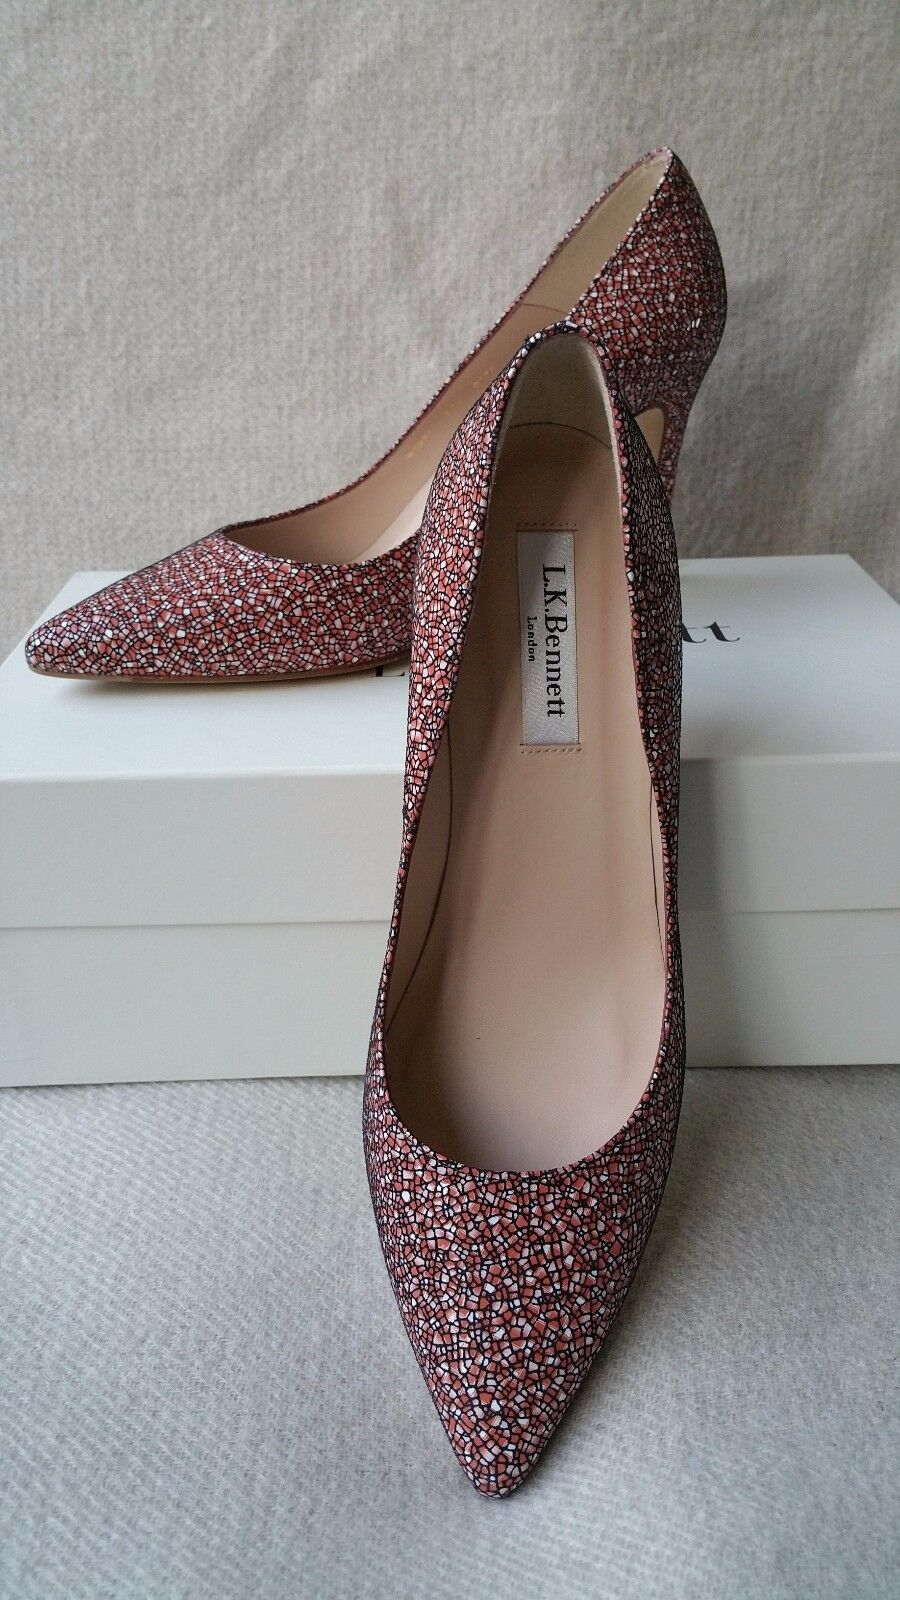 NIB L.K. Bennett Floret Pumps 37.5 Candy Patent Pointed Toe shoes Leather Red